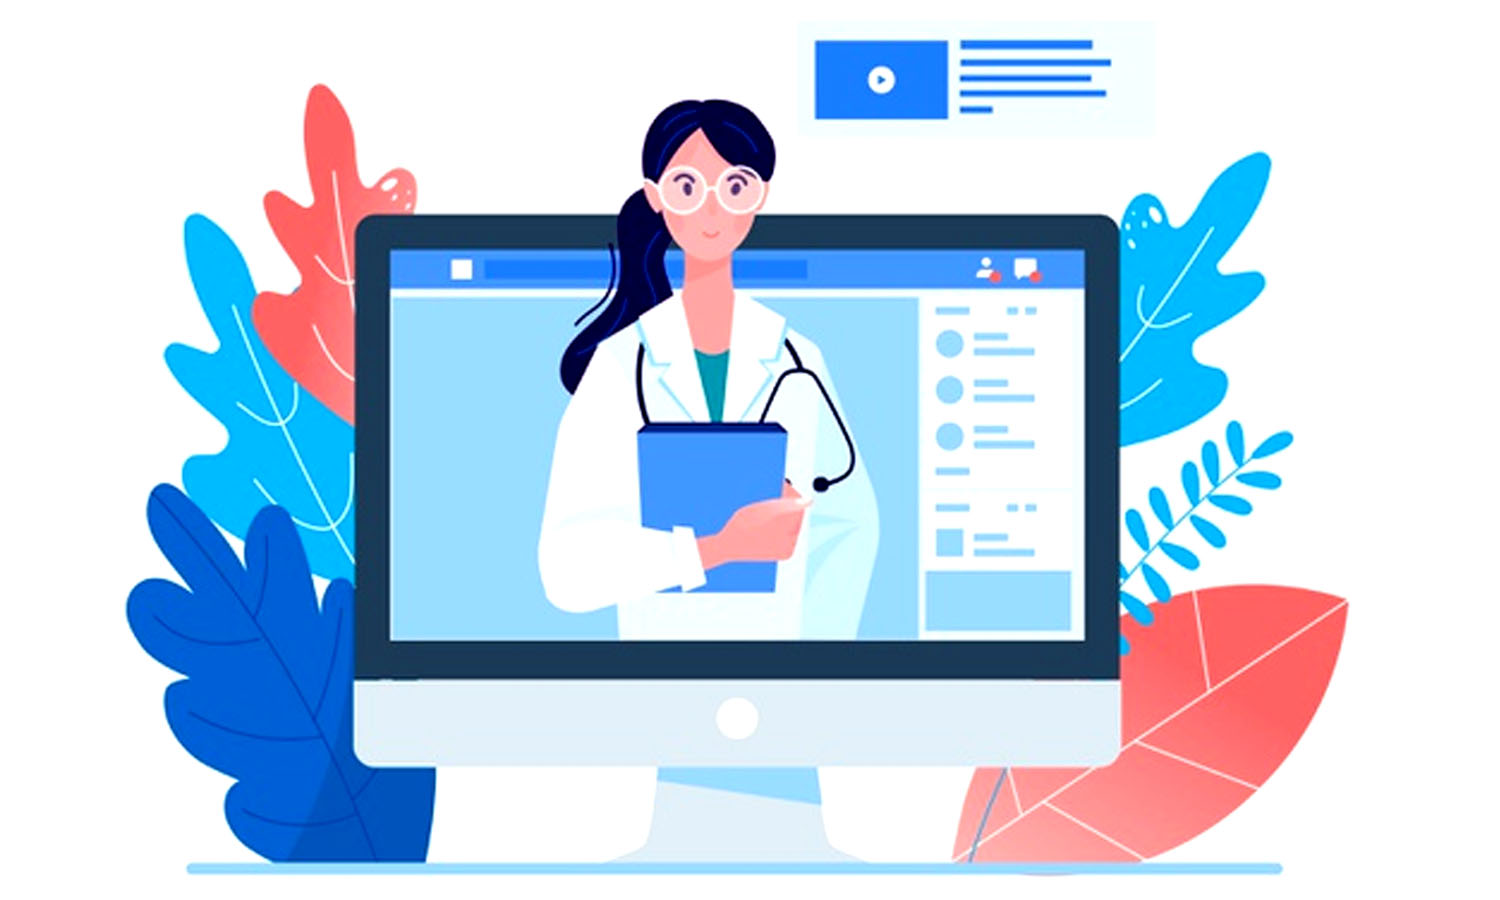 Why Use Online Medical Consultation?